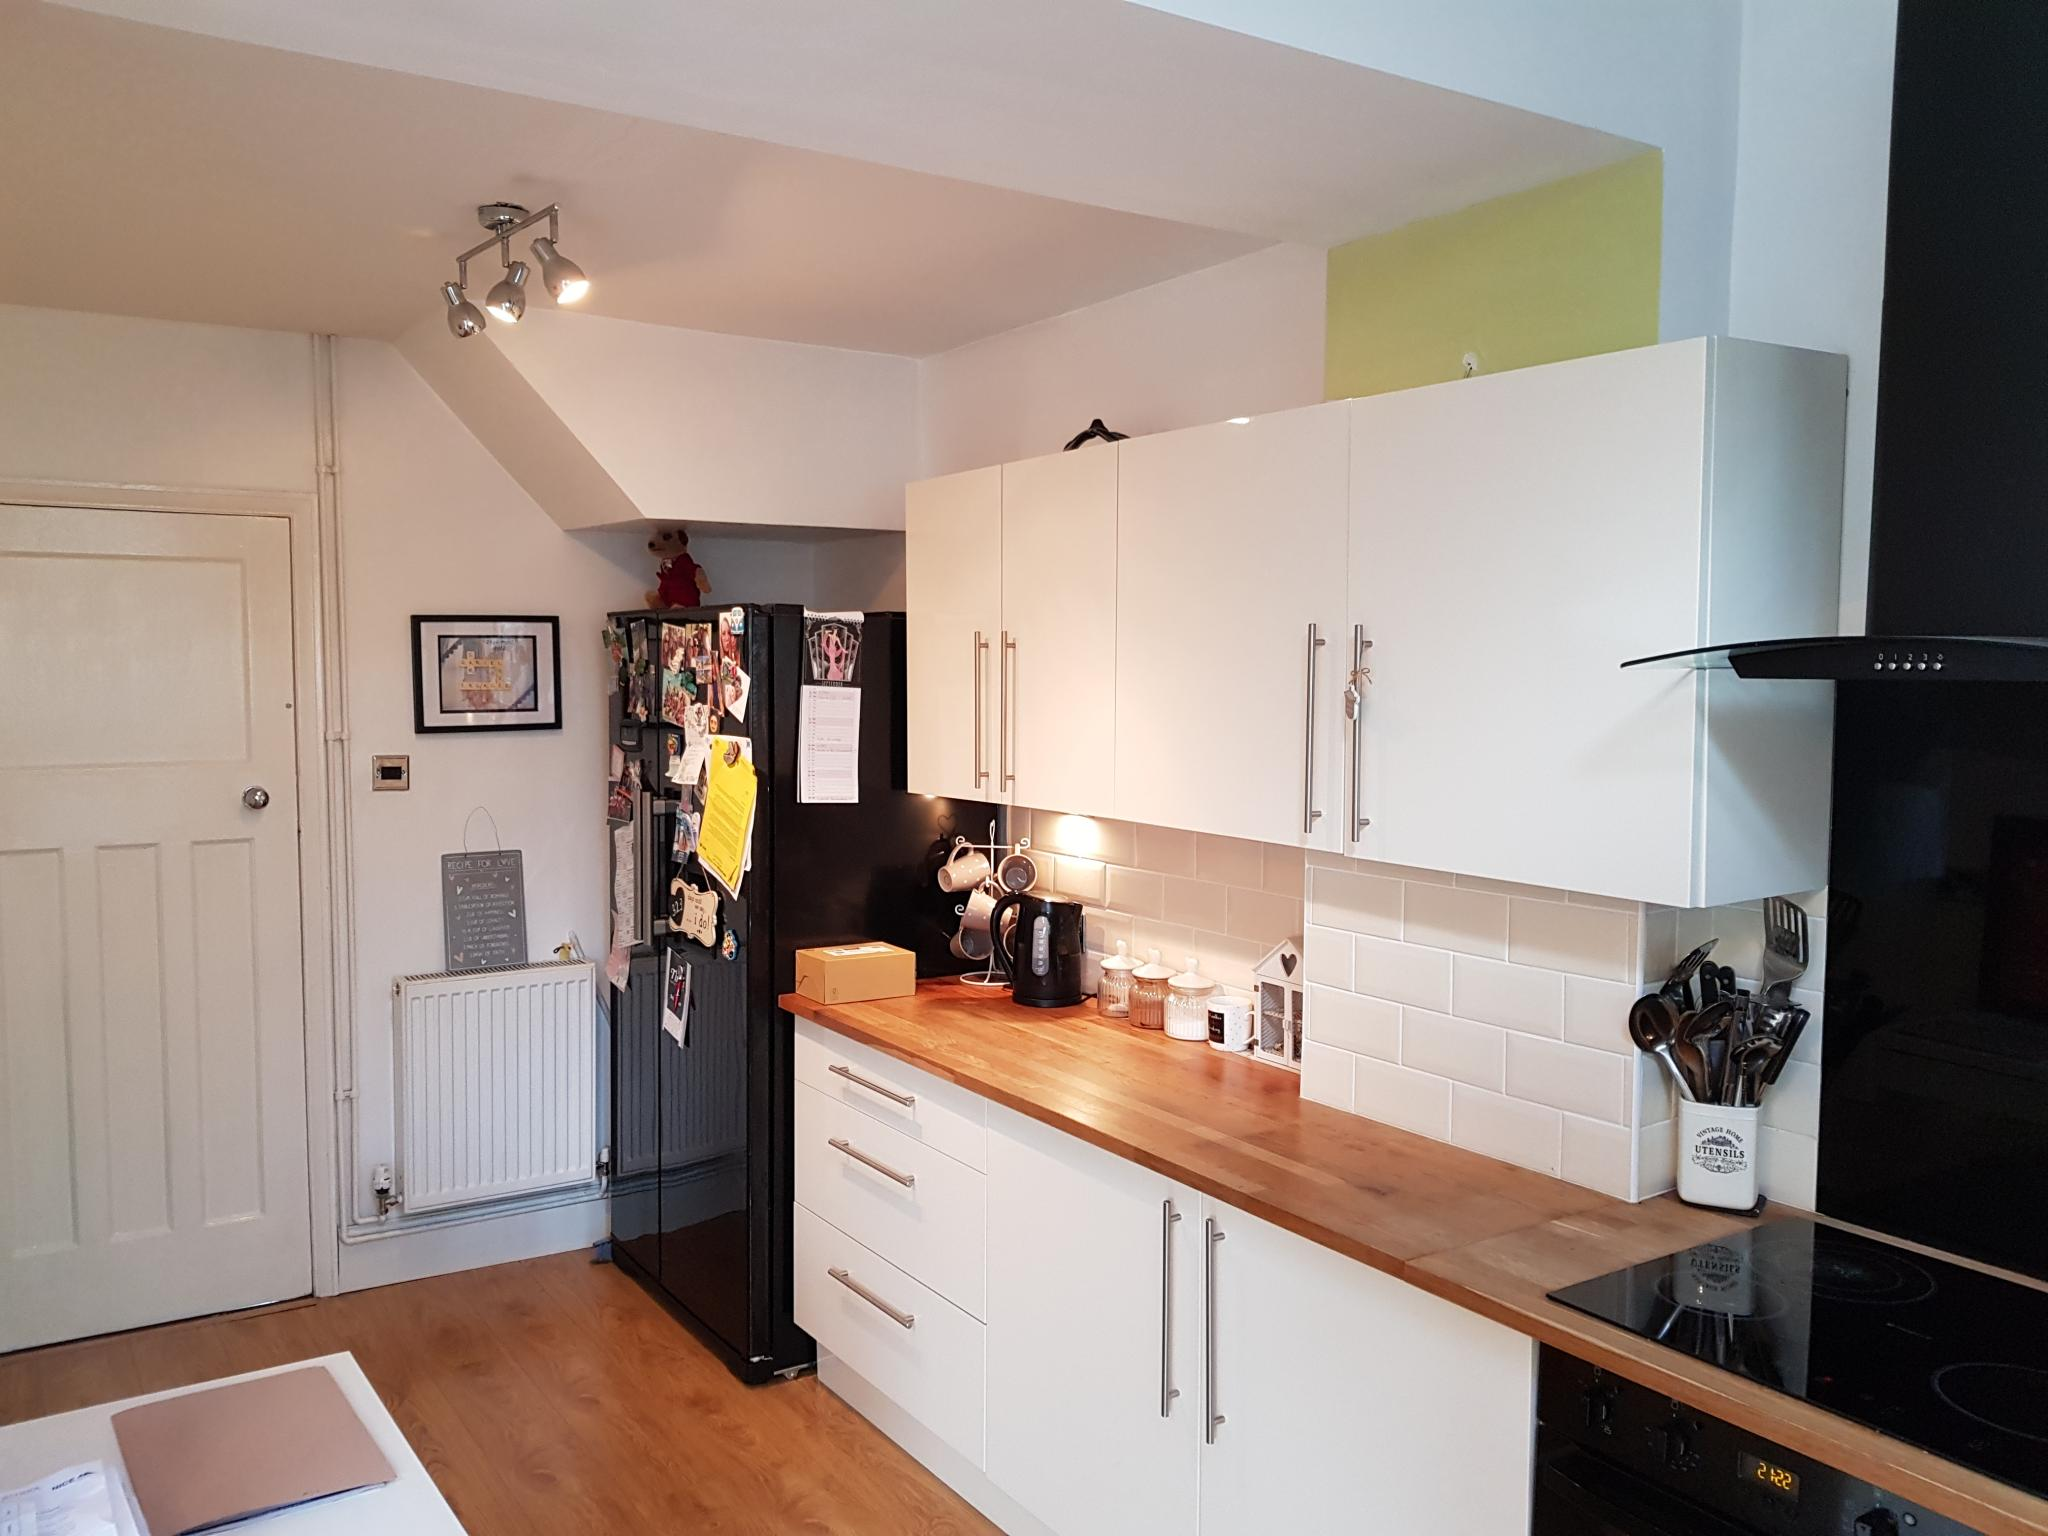 3 bedroom mid terraced house SSTC in Ipswich - 6